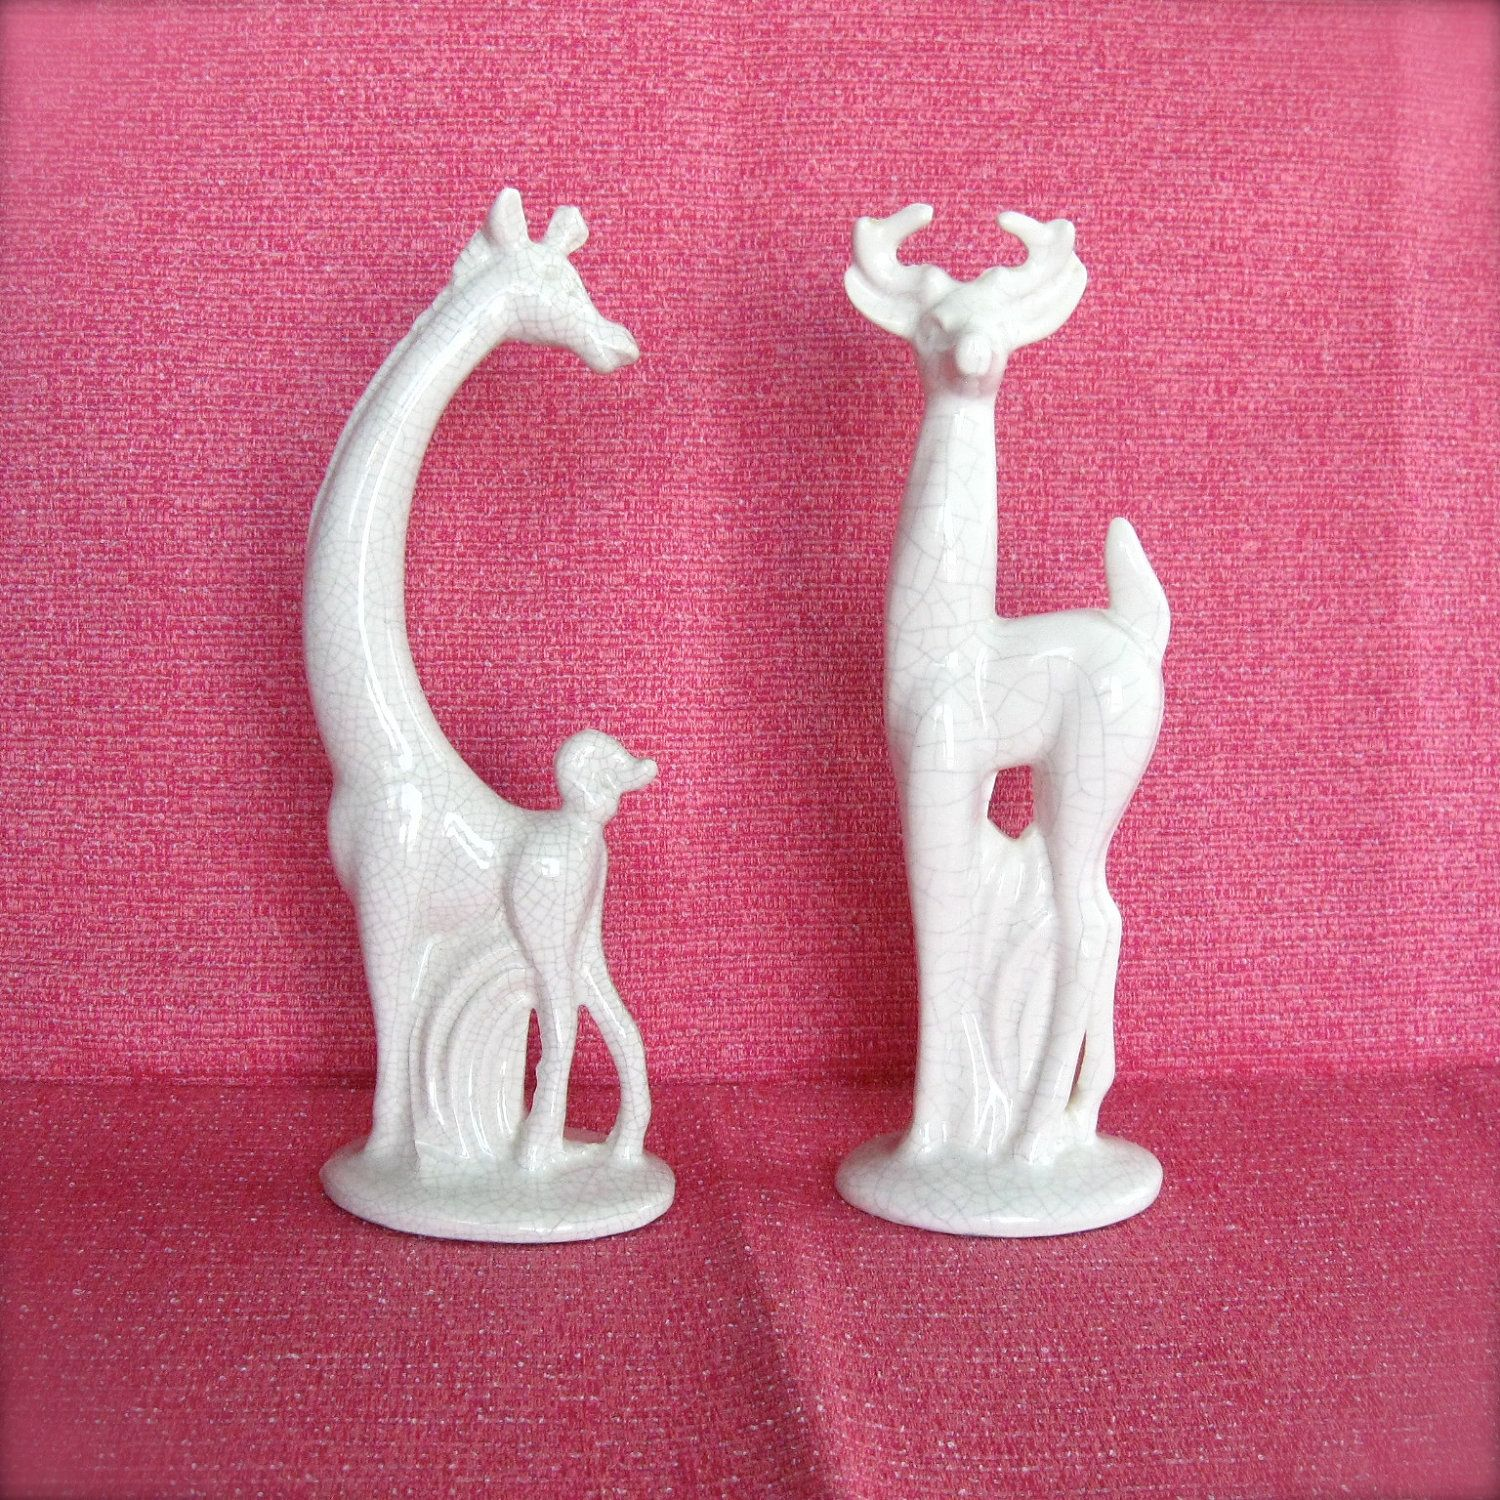 Animal Figurines Home Decor Vintage Mid Century Deer And Giraffe Figurines White With